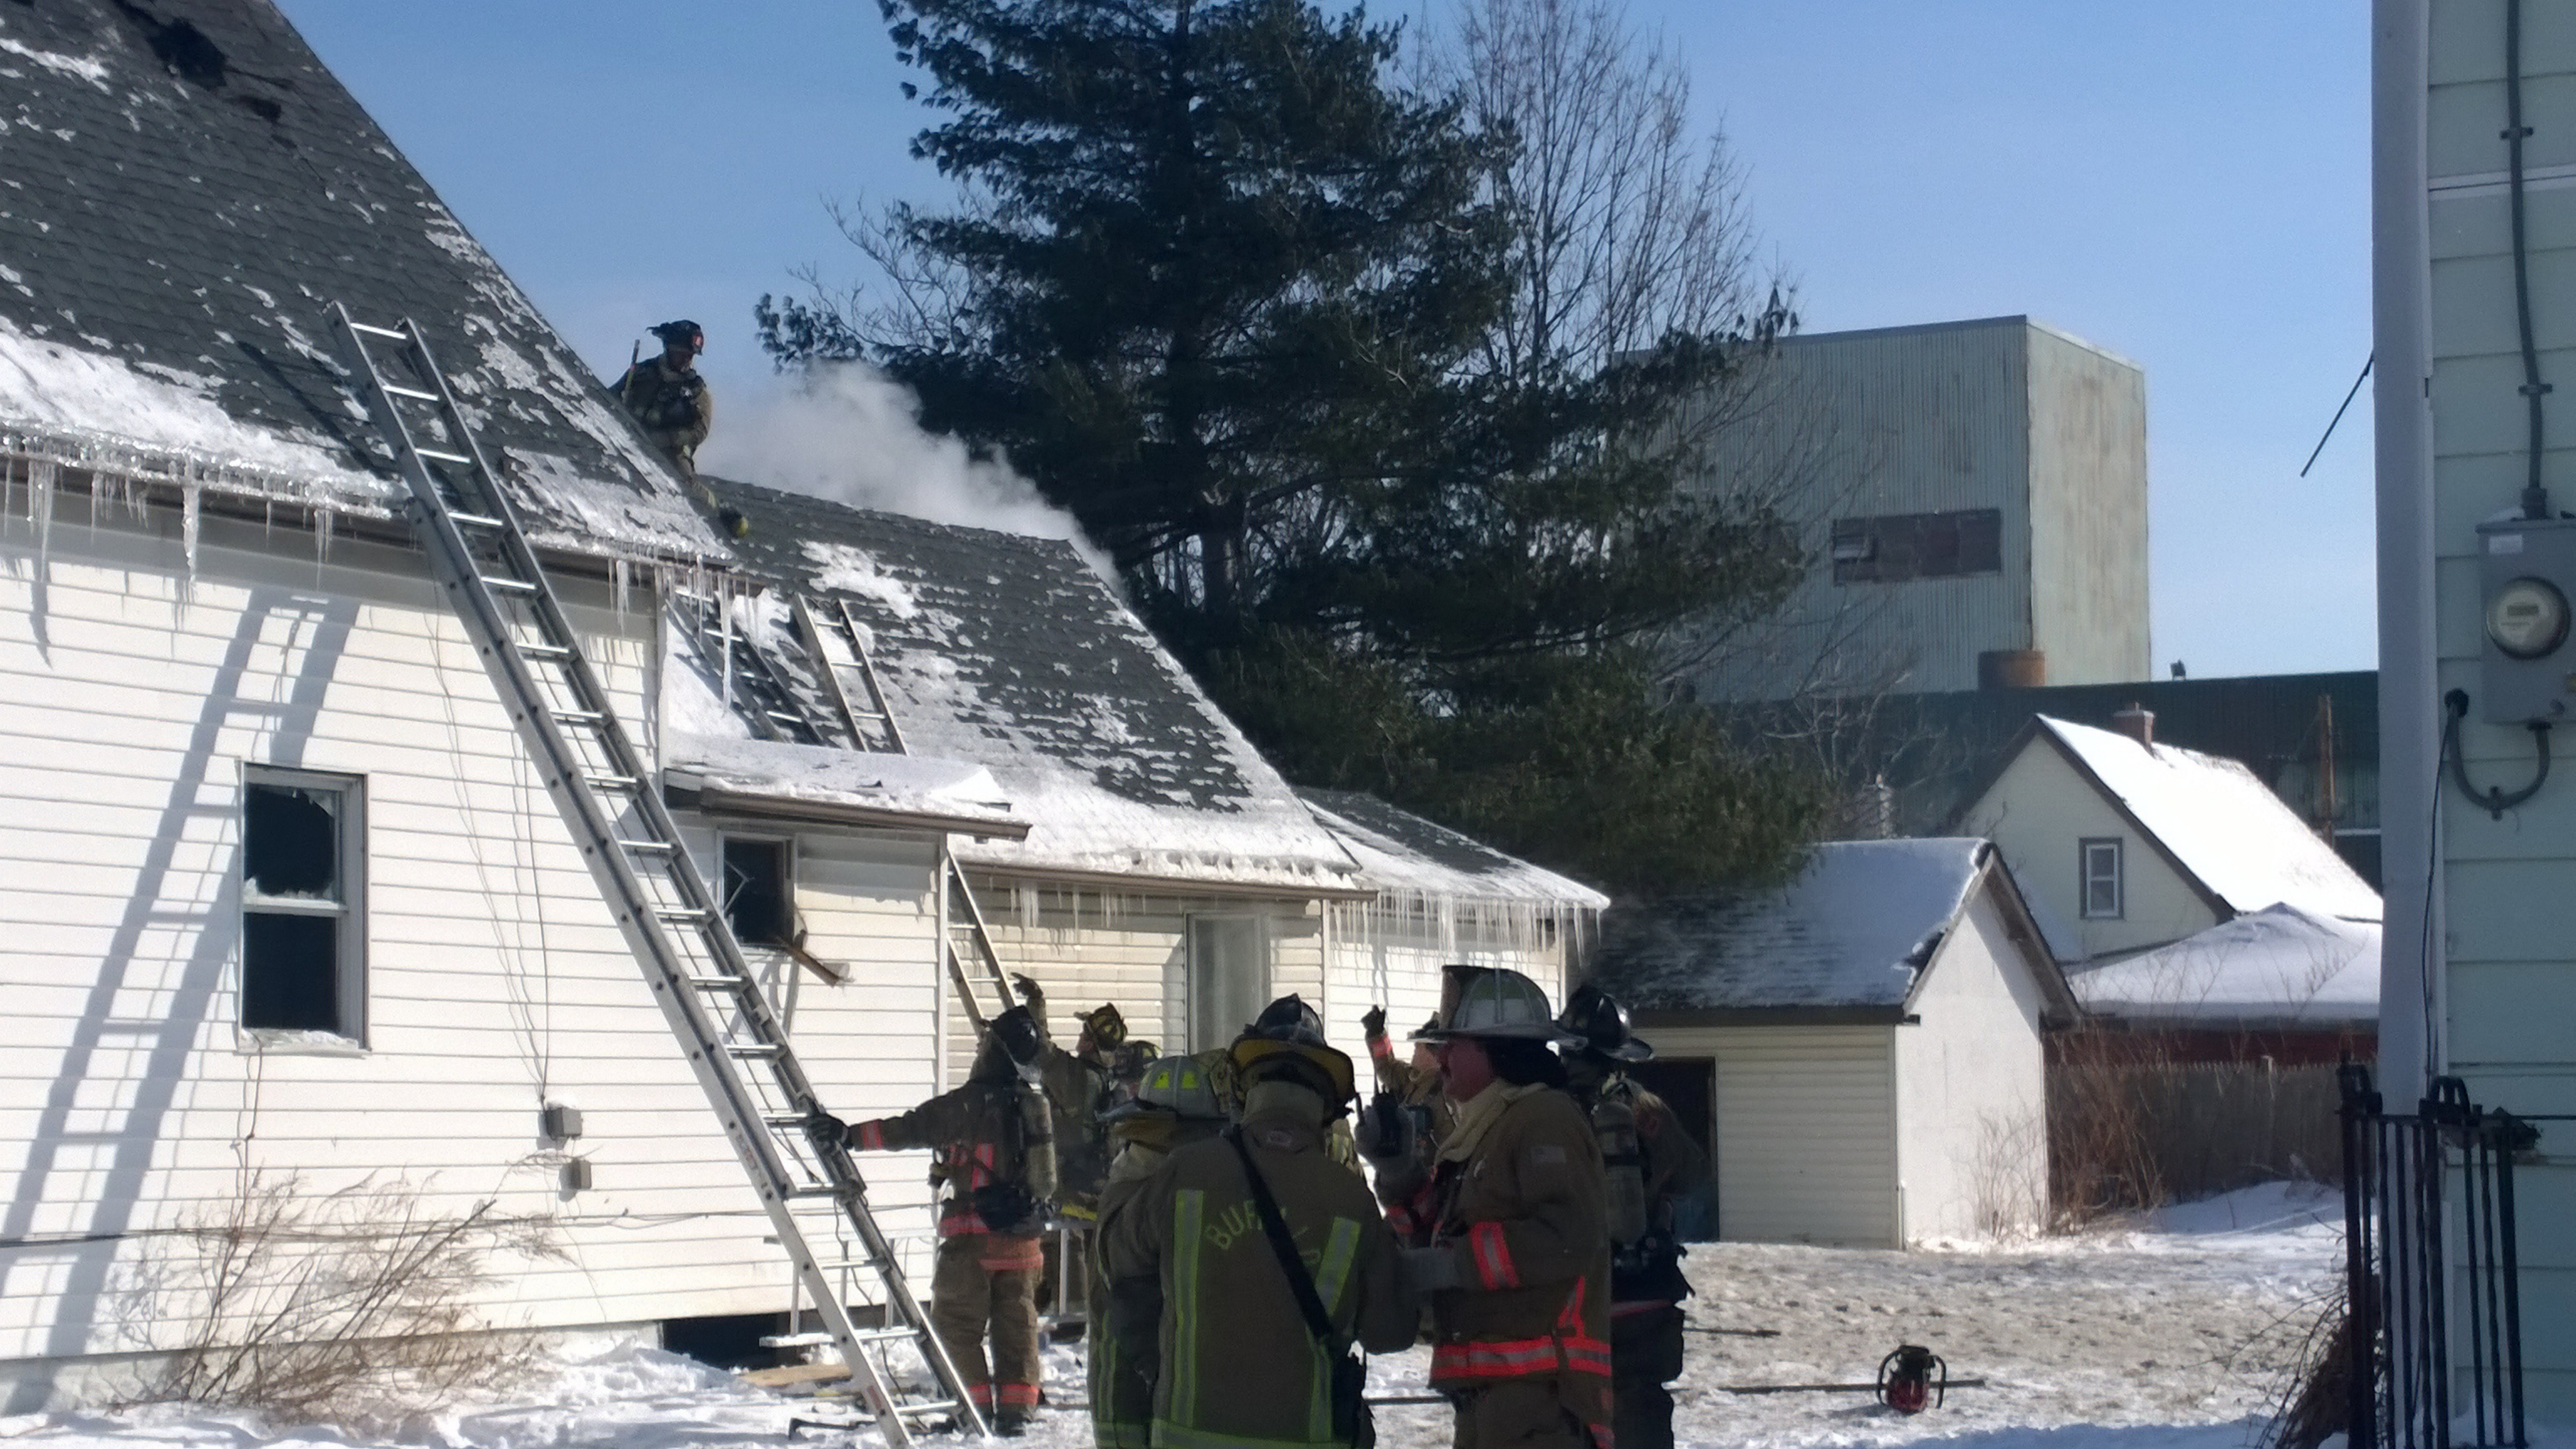 Firefighters were called out to quell a fire Friday at 215 Scoville Ave. in Buffalo's  Clinton-Bailey area. The fire was caused when a torpedo heater was used to thaw frozen pipes.